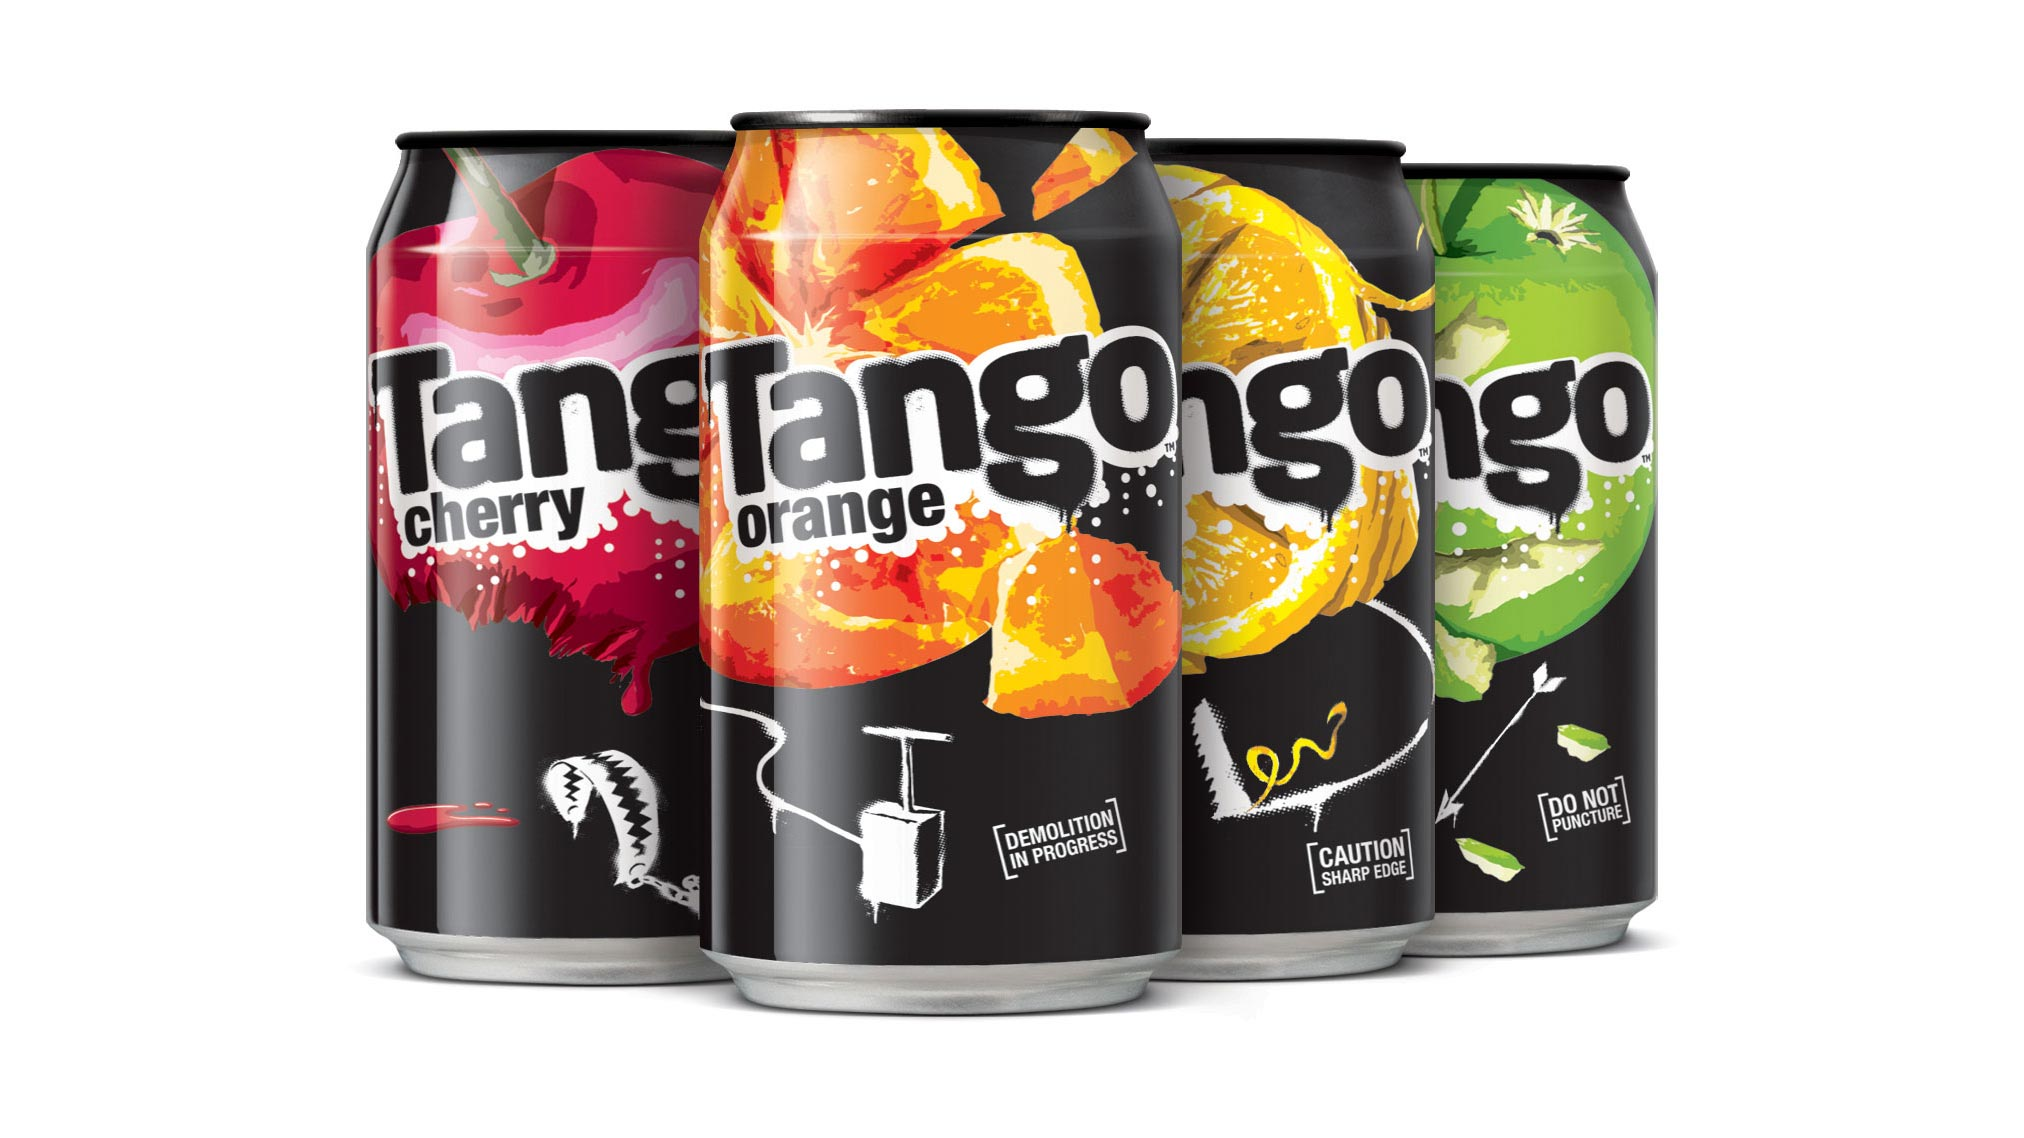 Kết quả hình ảnh cho image Although Tango uses classic colours to identify flavours, the logo and can design use unconventional black